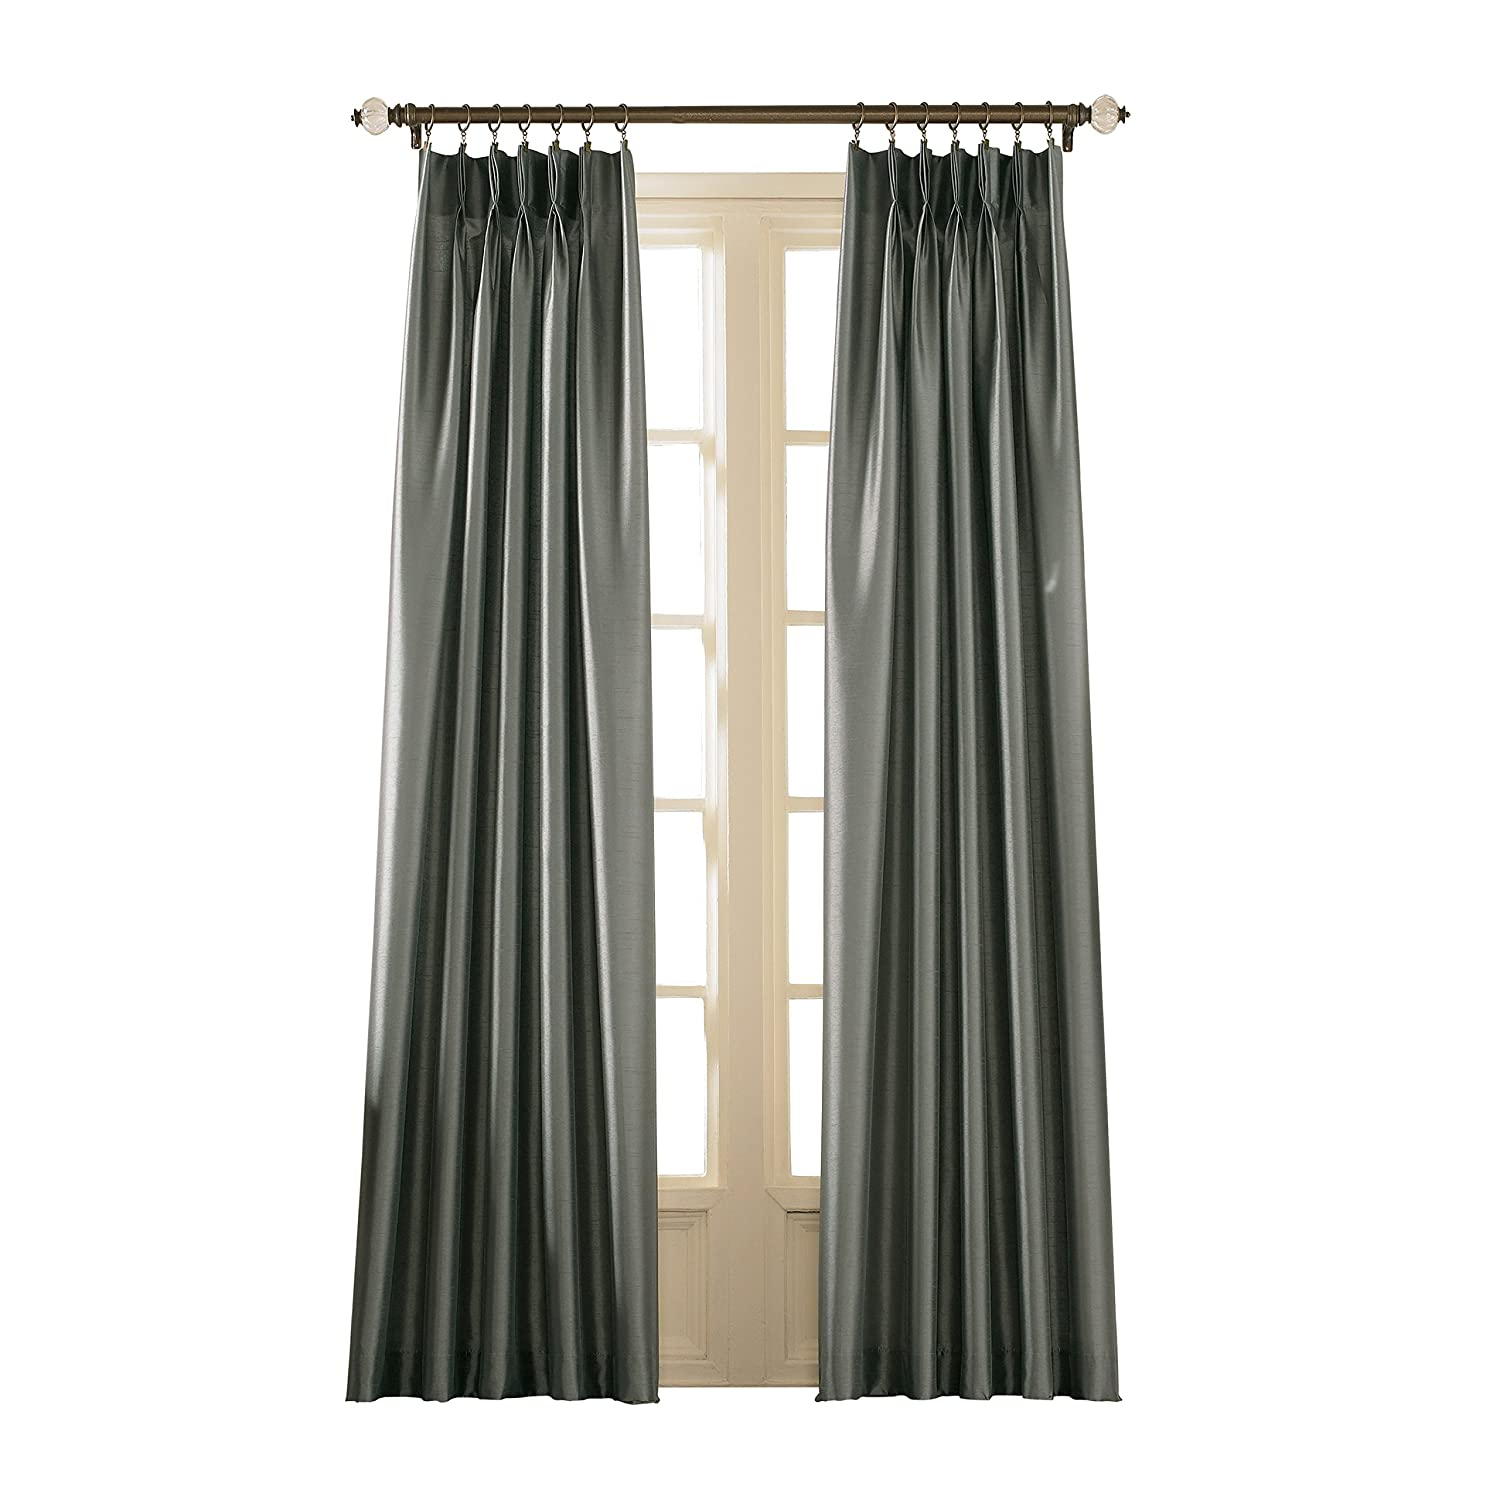 pleat tab curtains windsor a bath pleated outlet marsala back pinch panel curtain